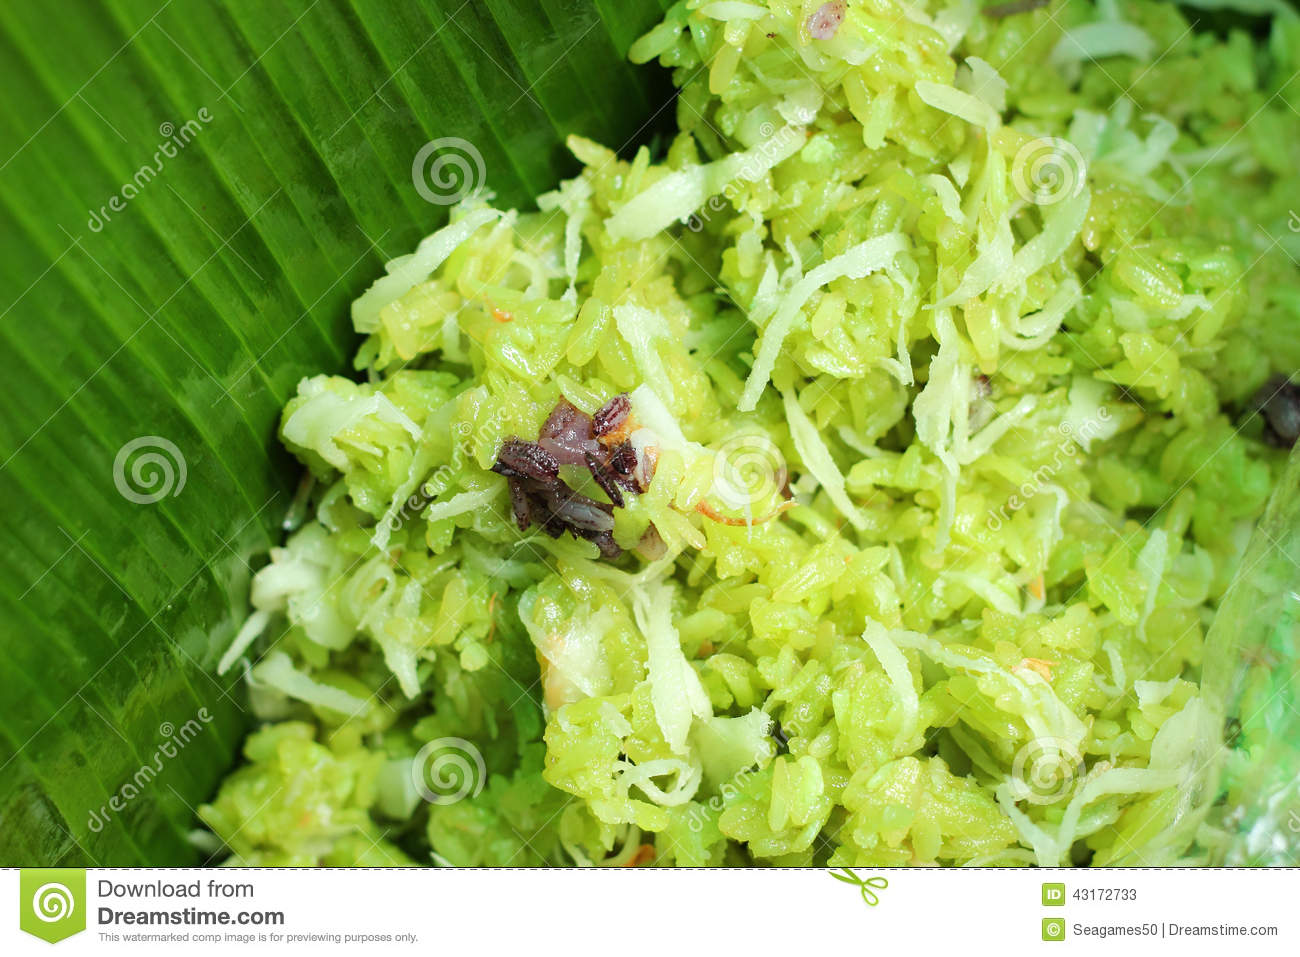 Green Sticky Rice With Coconut Milk Stock Photo - Image: 43172733